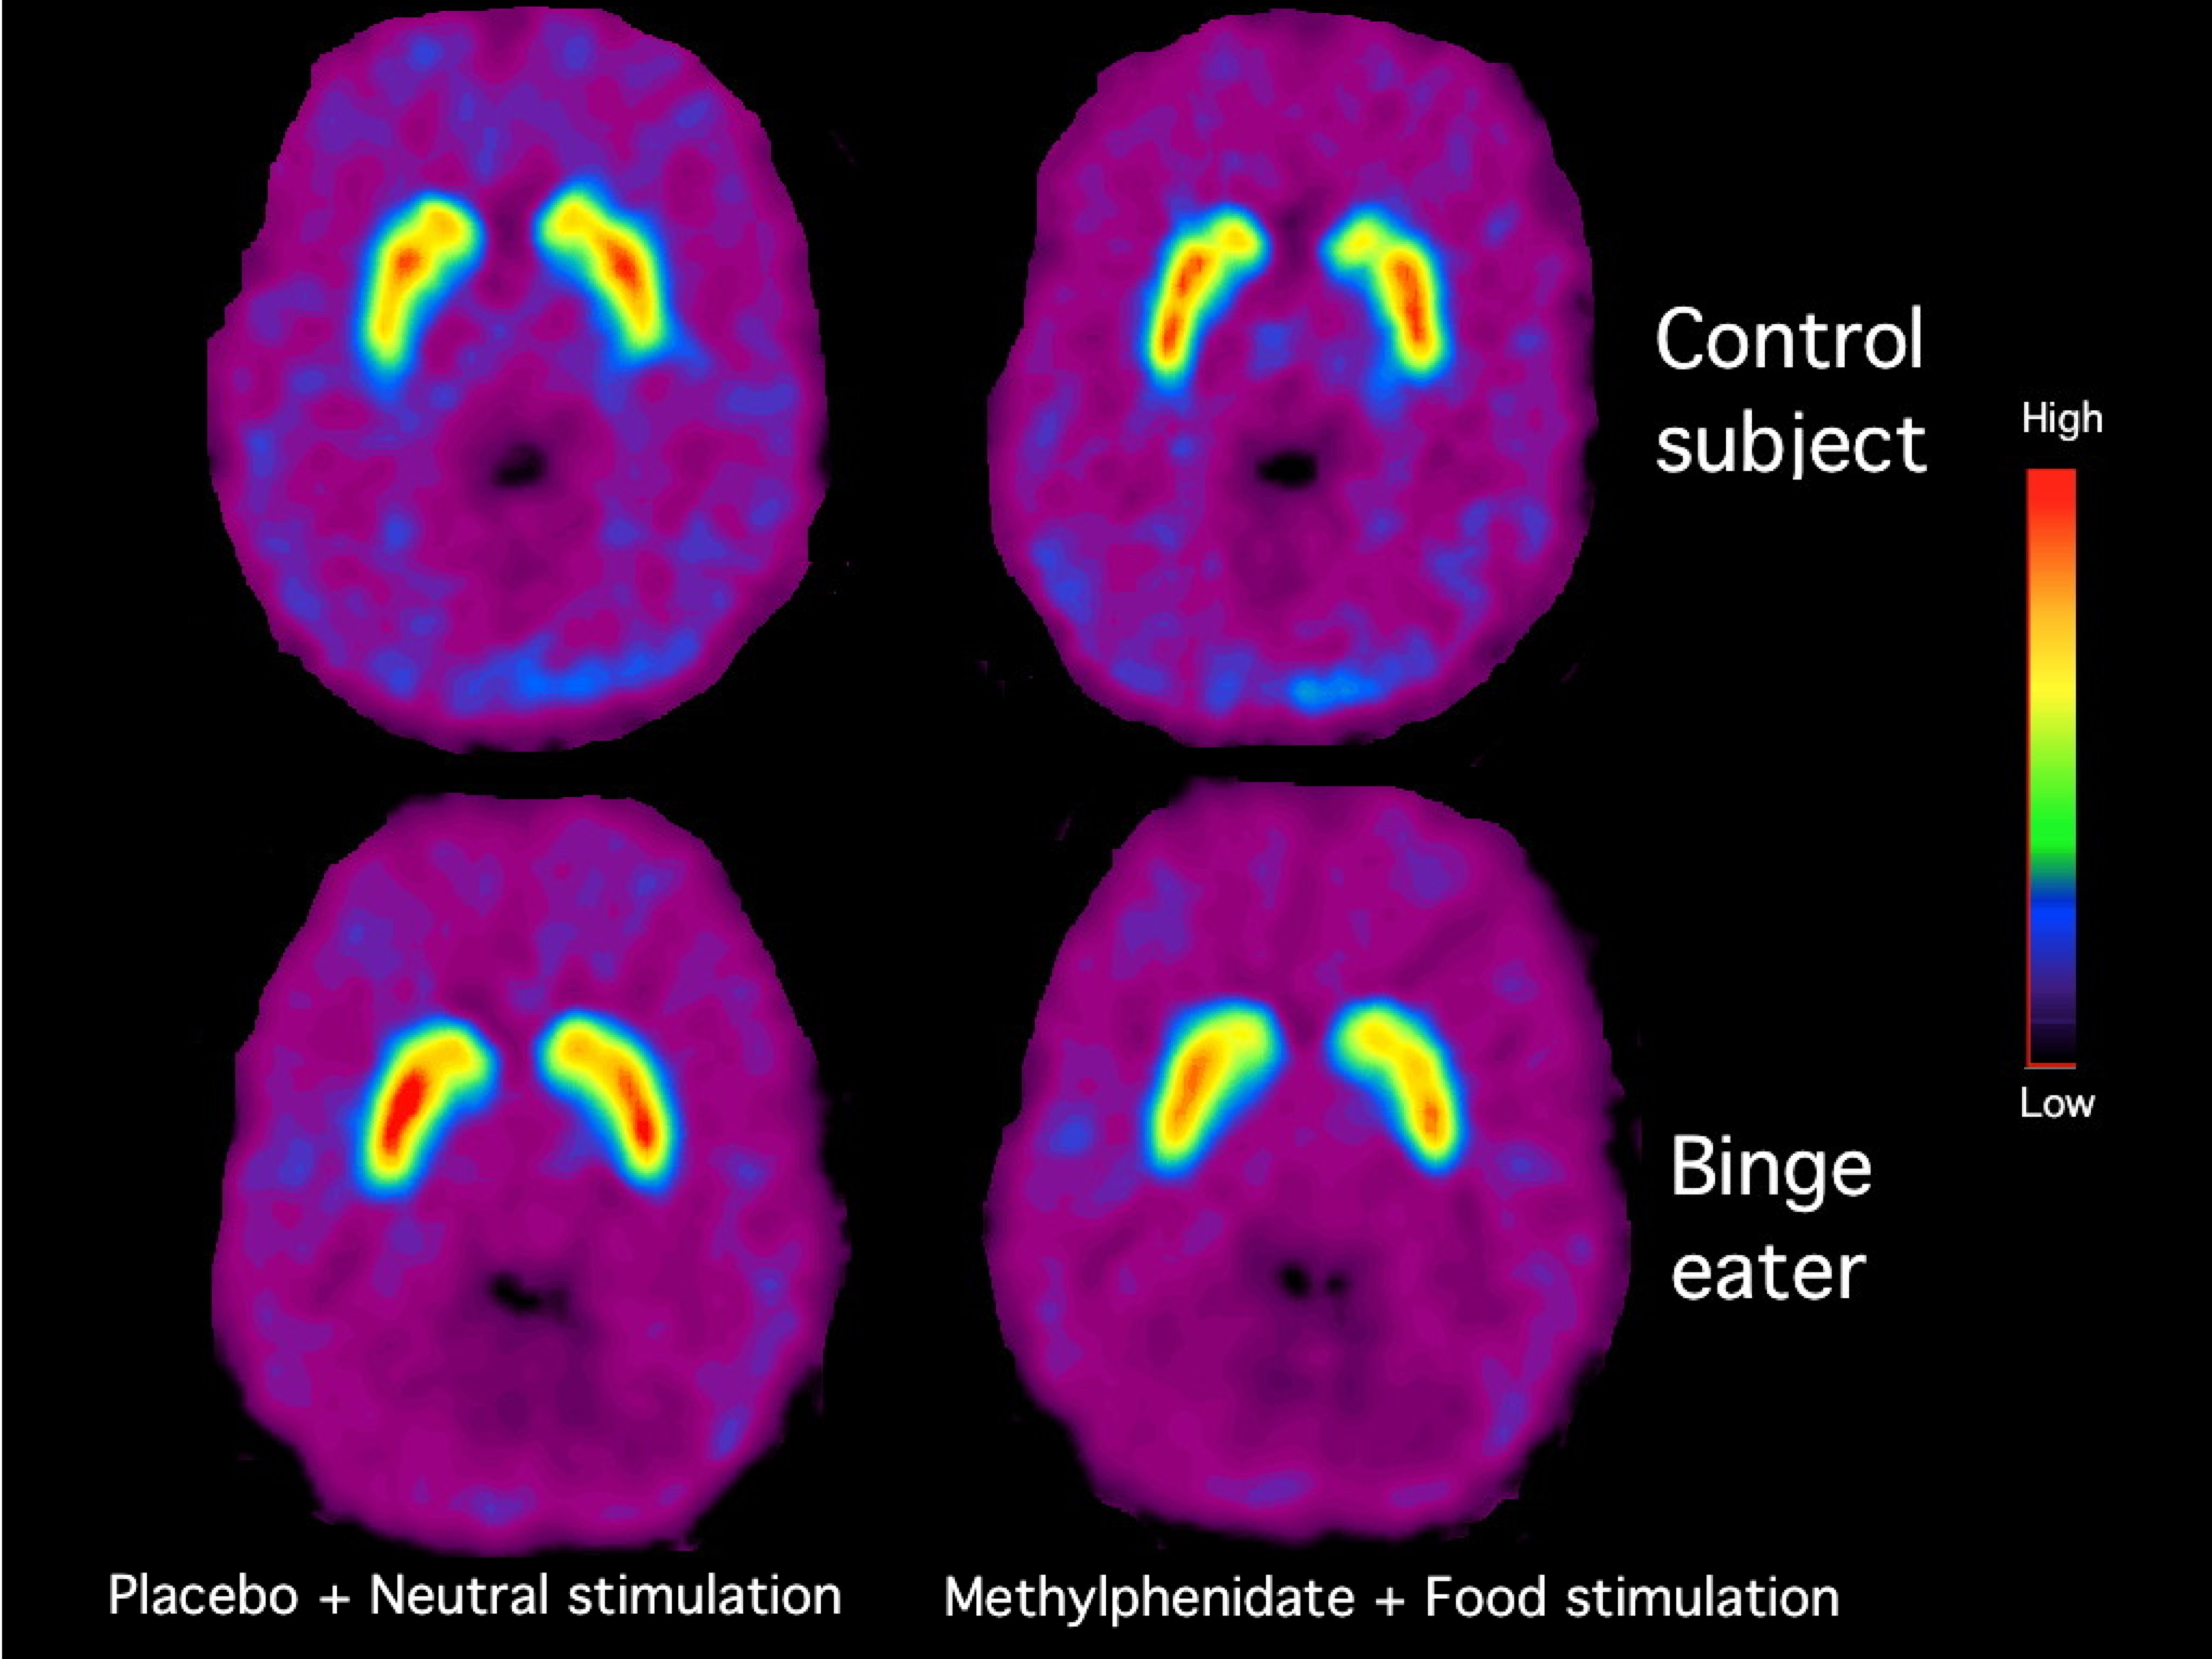 brain motivation incentive The incentive sensitization theory focuses on sensitization-induced changes in incentive motivational processes and related changes in the brain, but we have acknowledged that other brain changes contribute importantly to addiction too, including damage or dysfunction in cortical mechanisms that underlie cognitive choice and decision making (robinson & berridge 2000, 2003.